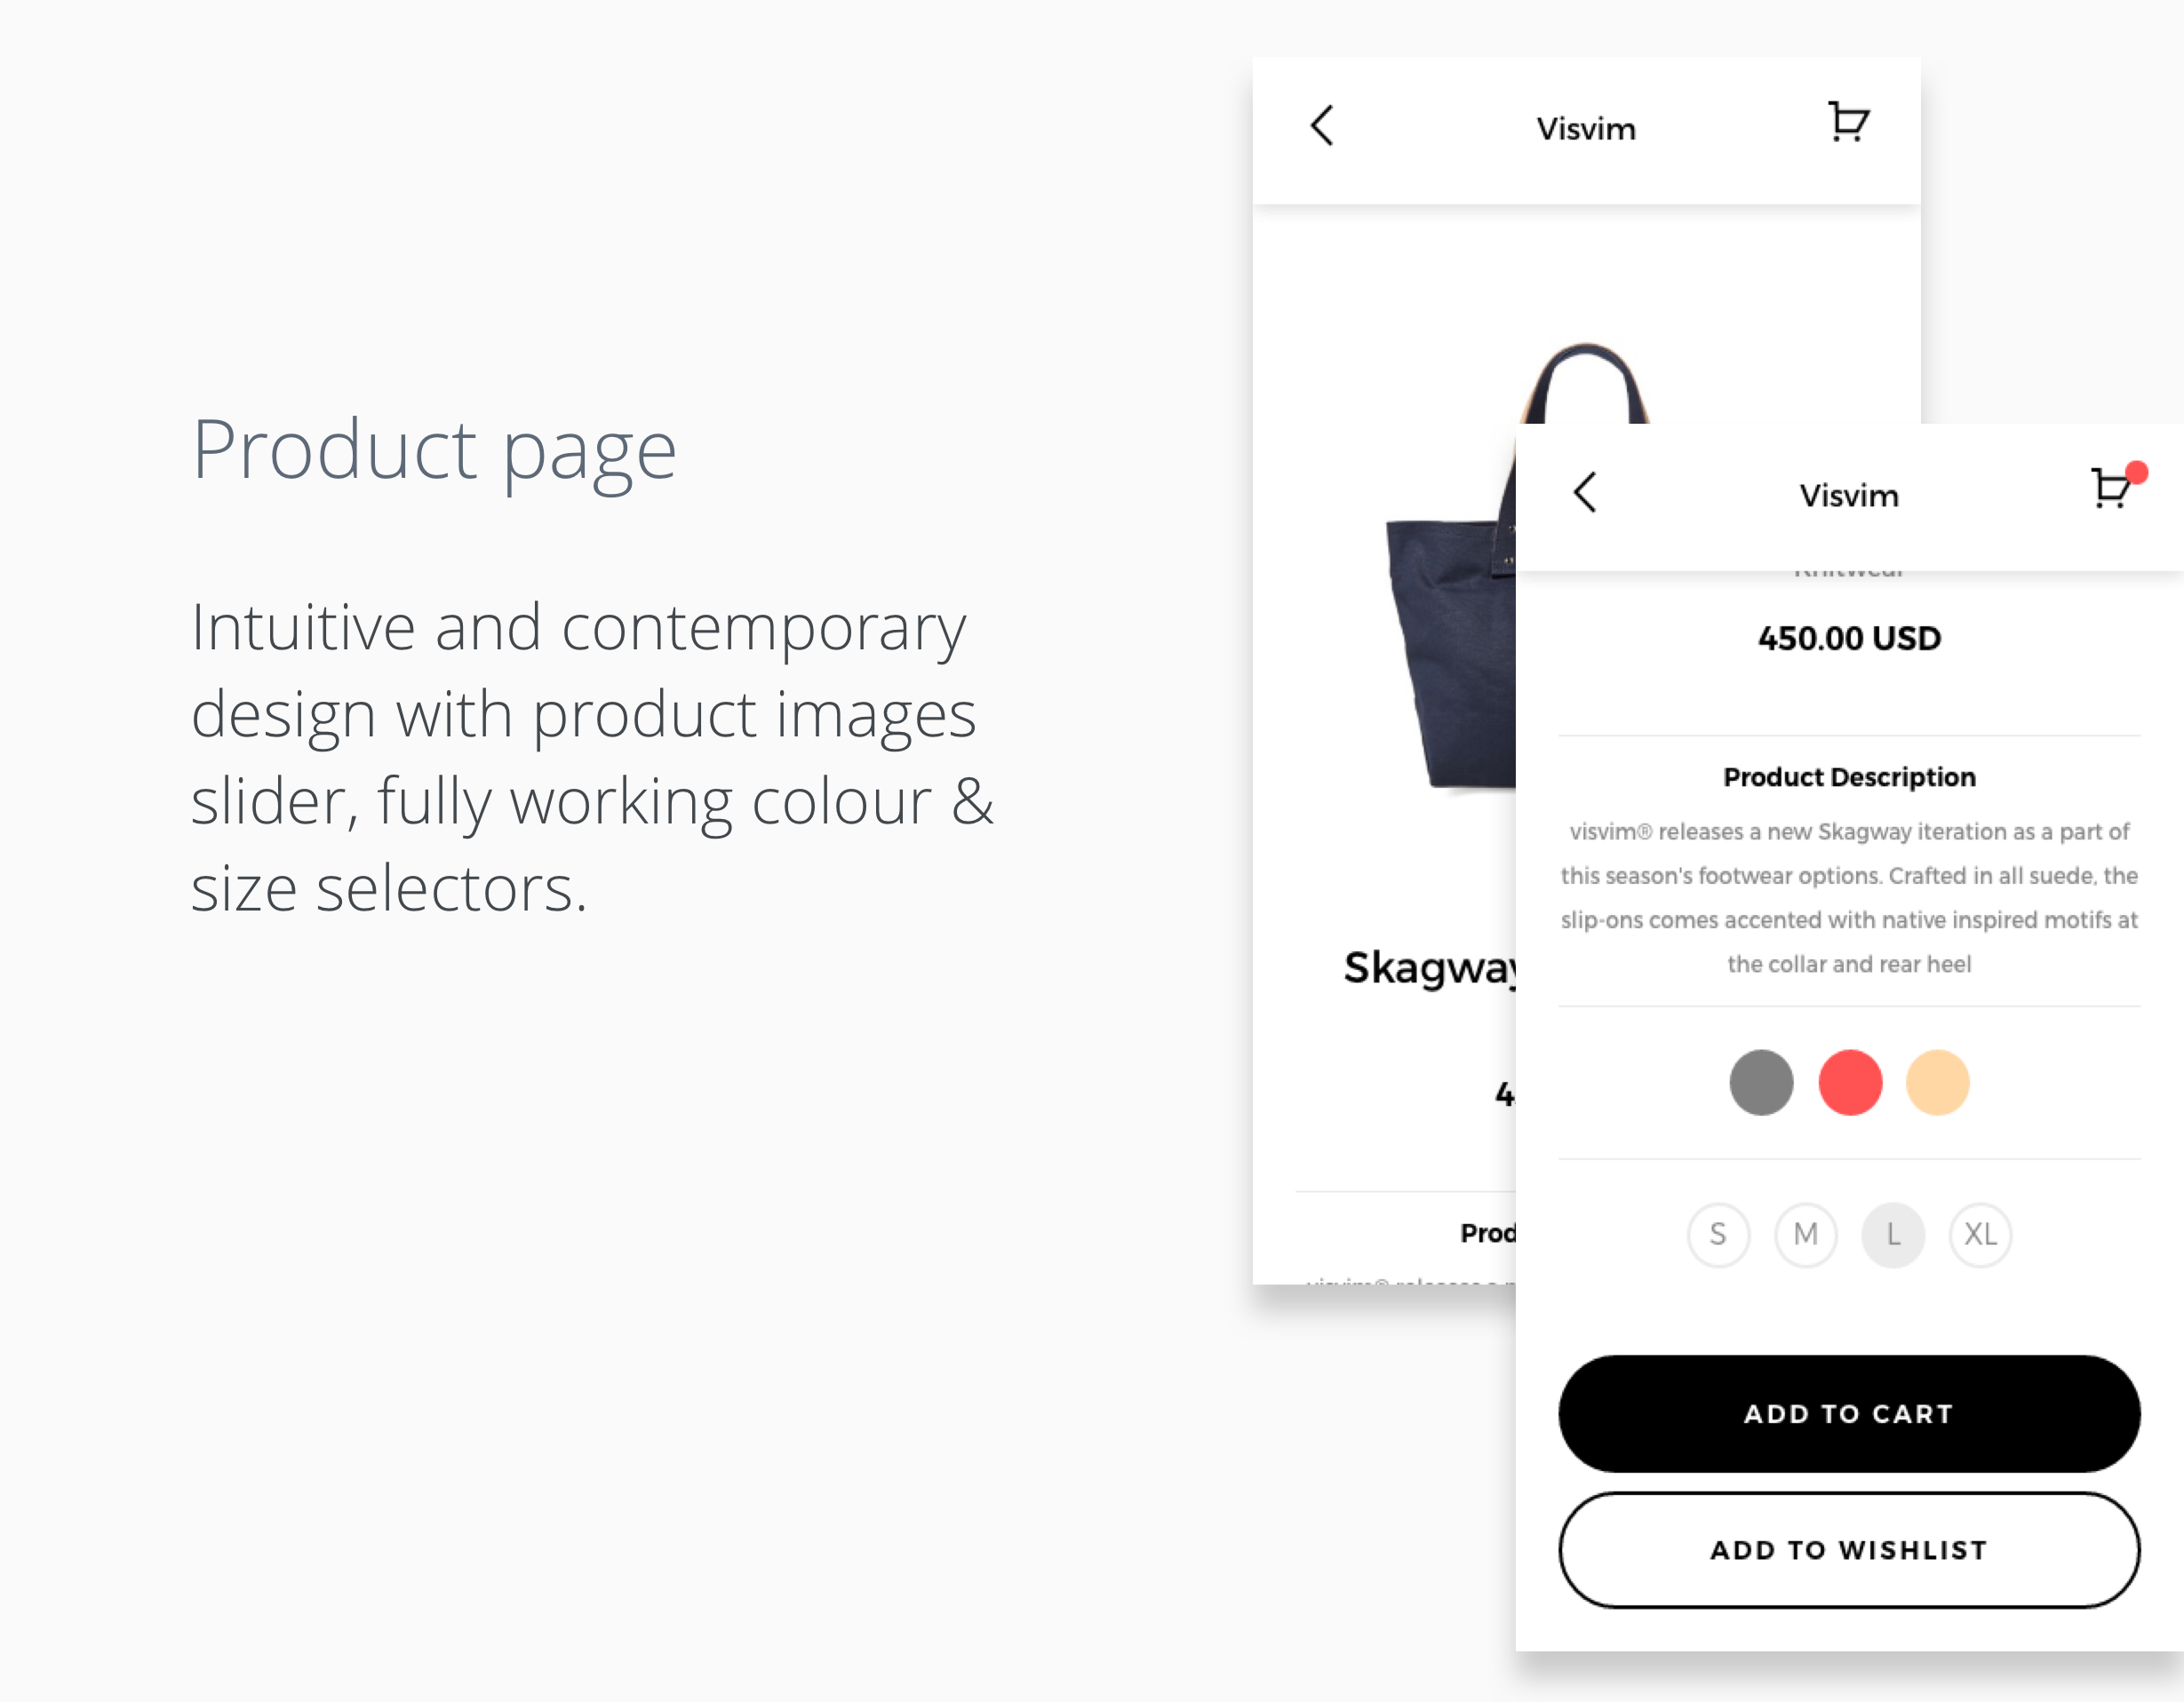 Maestro - Ionic Full Android, iOS E-Commerce App integrated with Woocommerce - 10